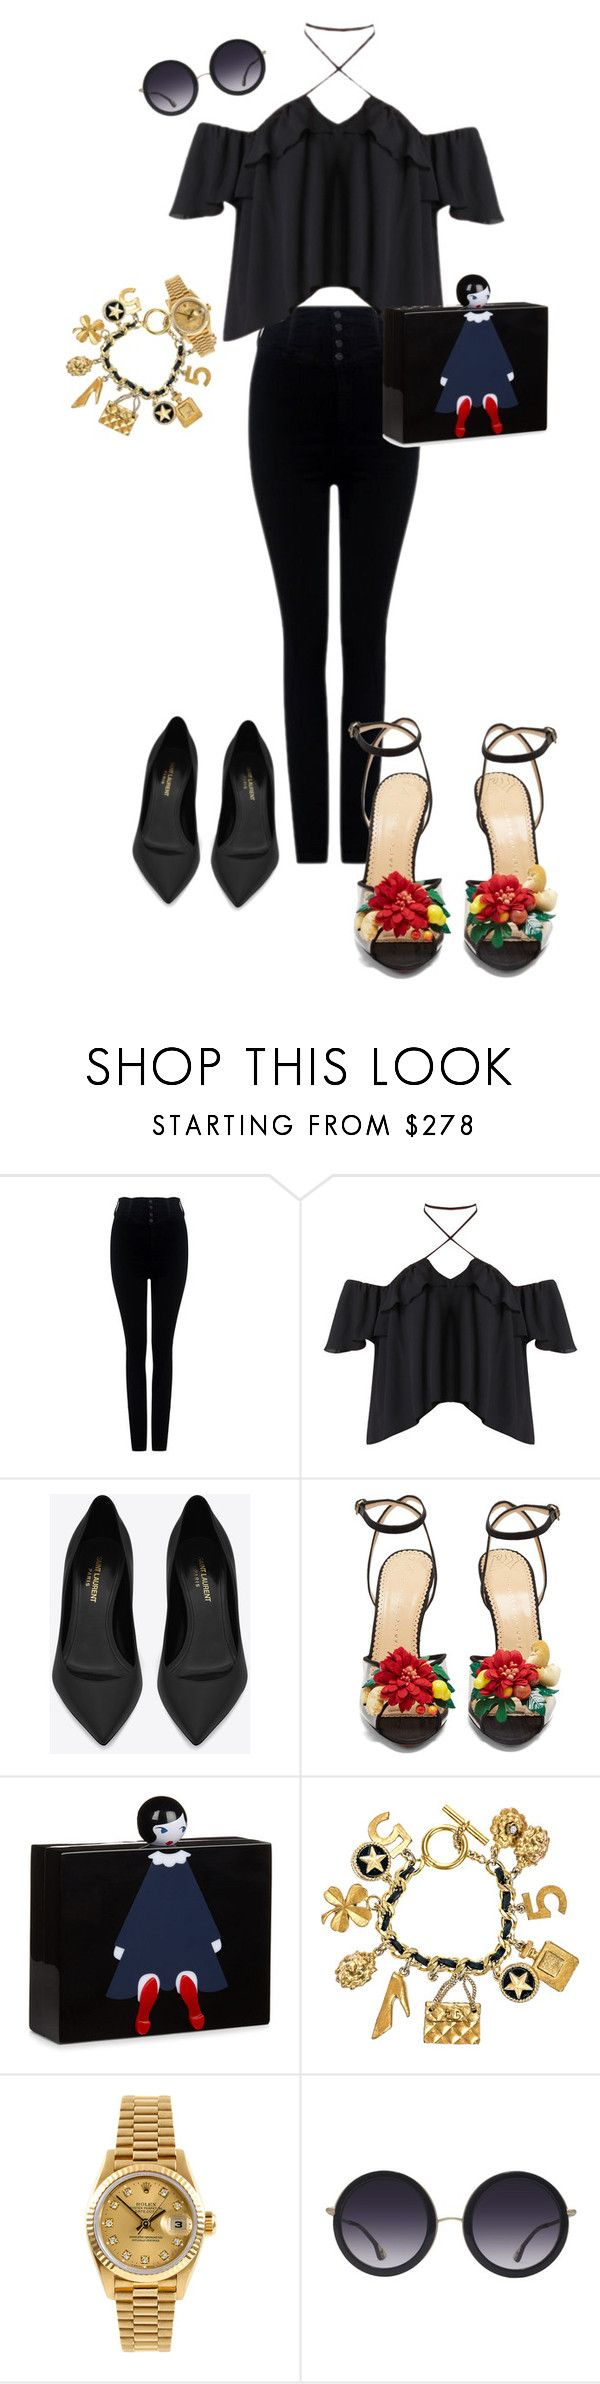 """""""Untitled #76"""" by itsmisstiff ❤ liked on Polyvore featuring Citizens of Humanity, Yves Saint Laurent, Charlotte Olympia, Lulu Guinness, Chanel, Rolex, Alice + Olivia, men's fashion and menswear"""